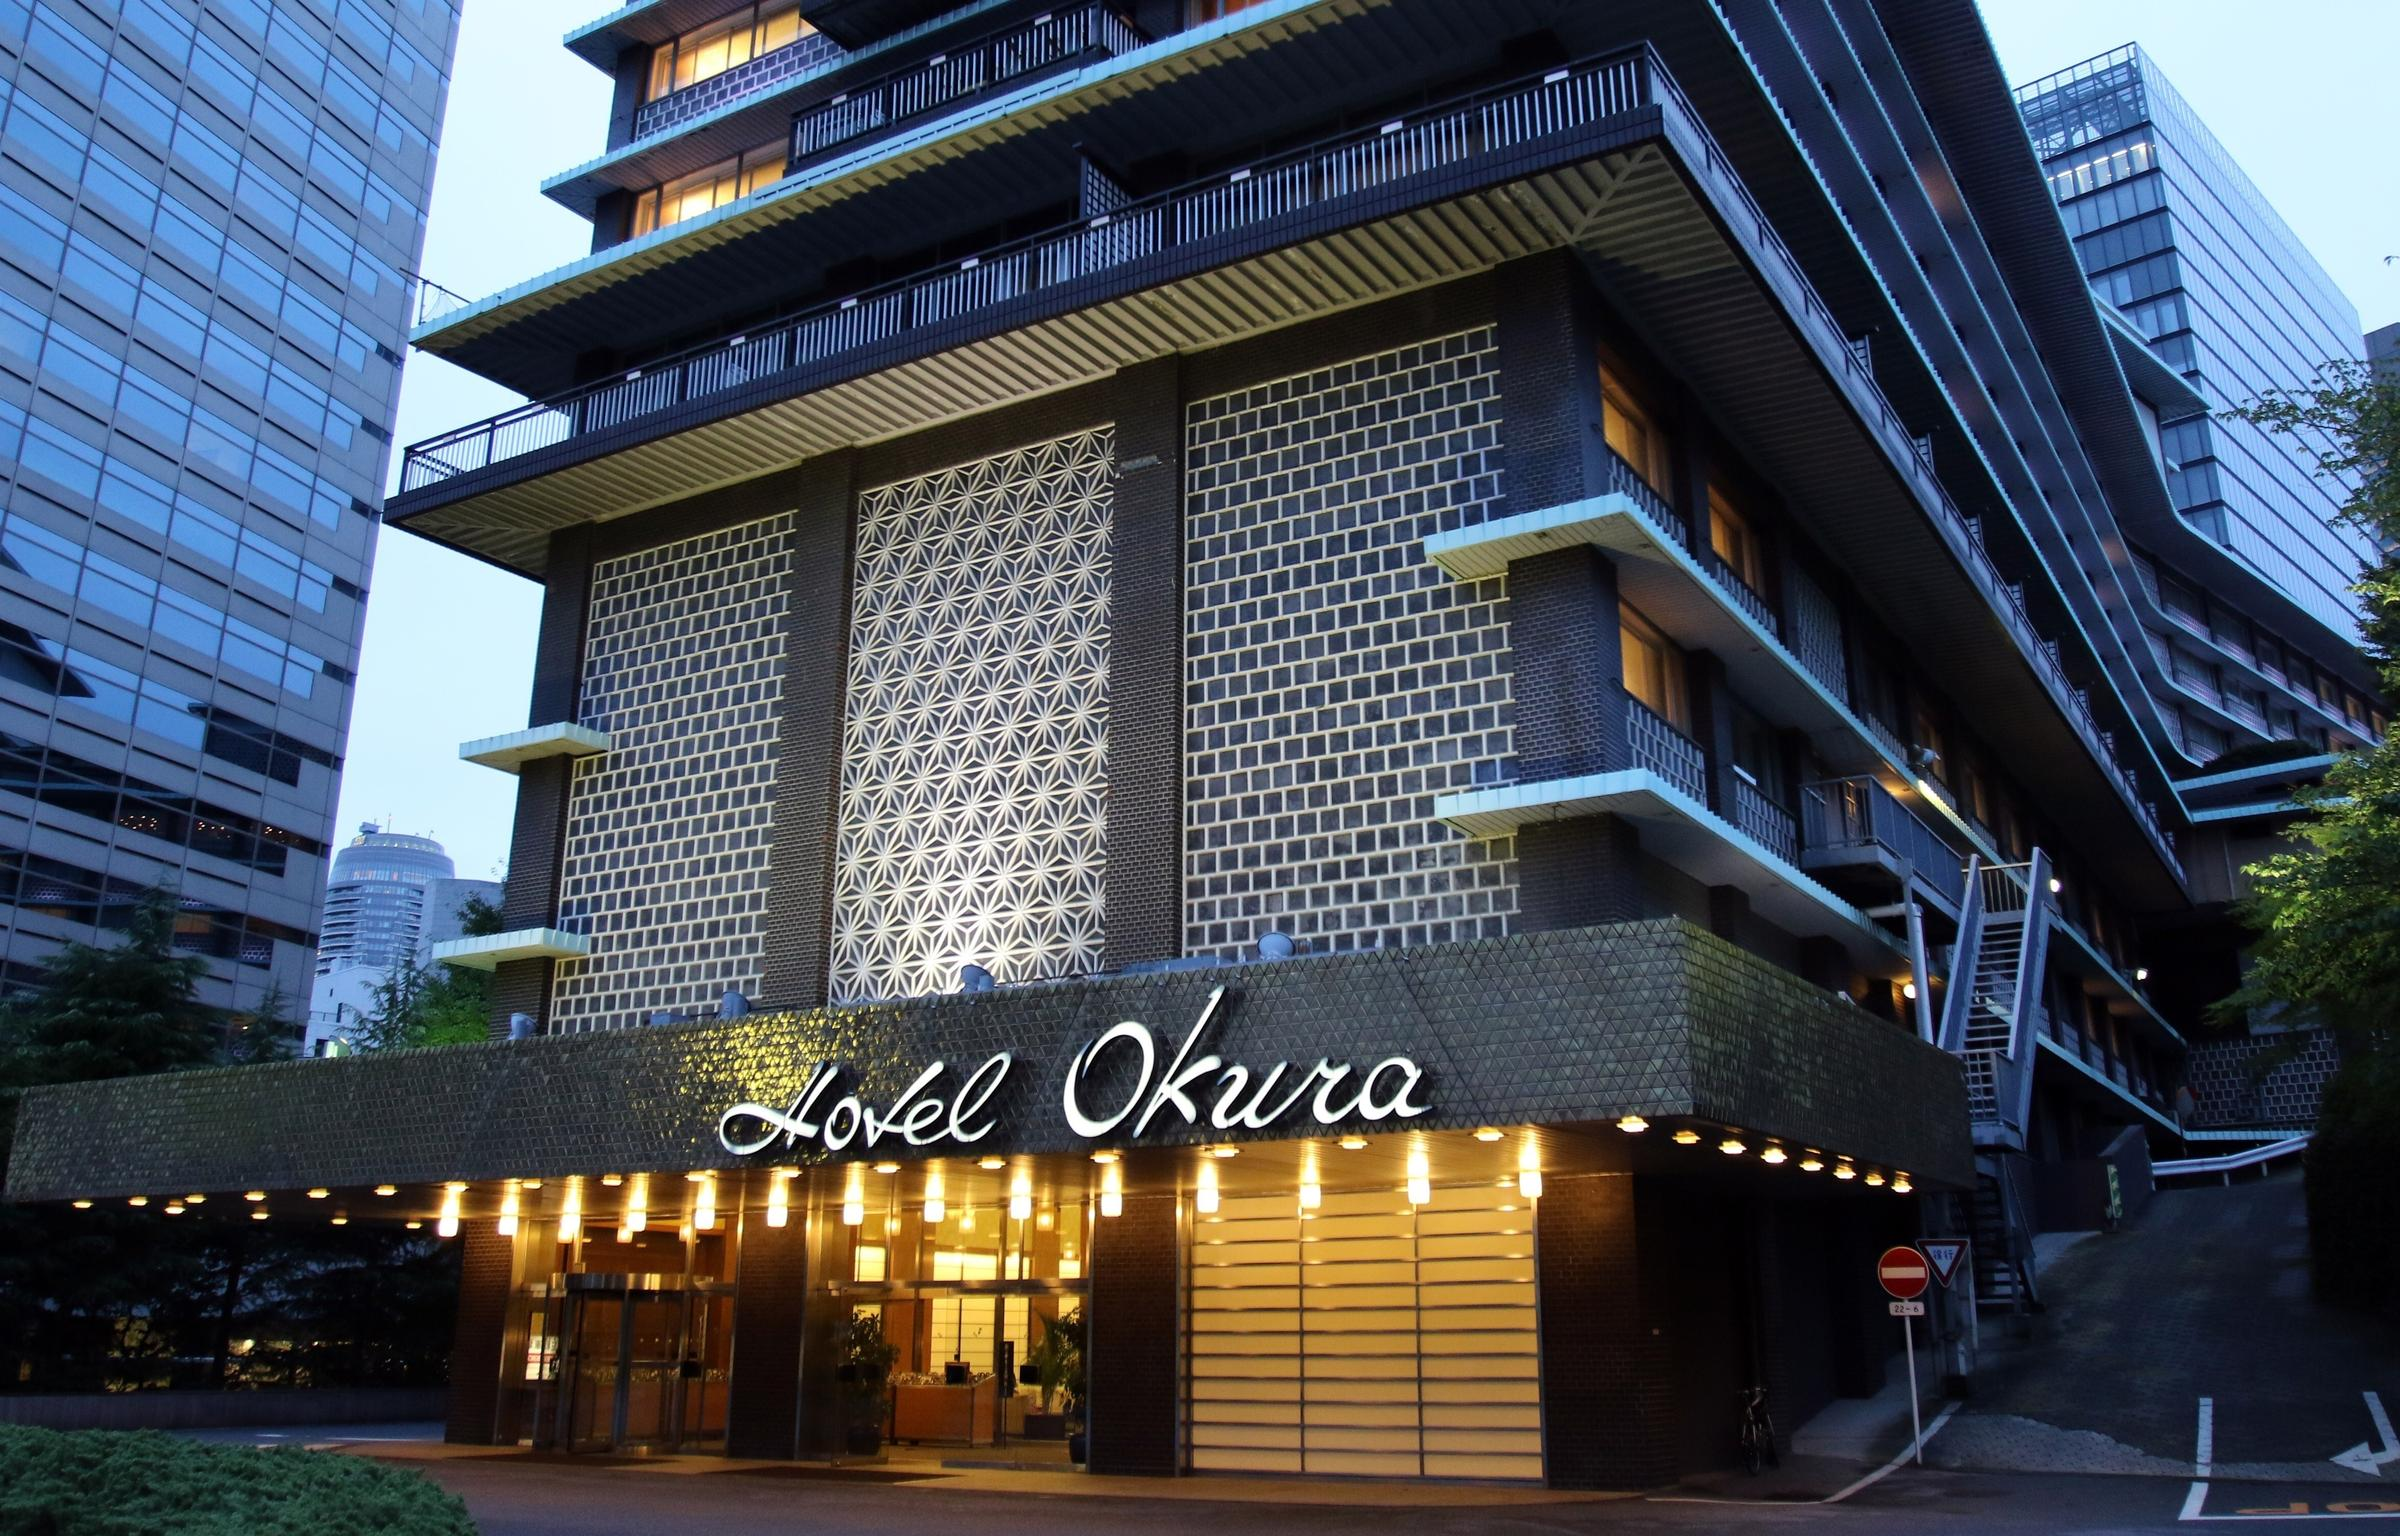 Workers are tearing down tokyo 39 s hotel okura and history for Design hotel tokyo